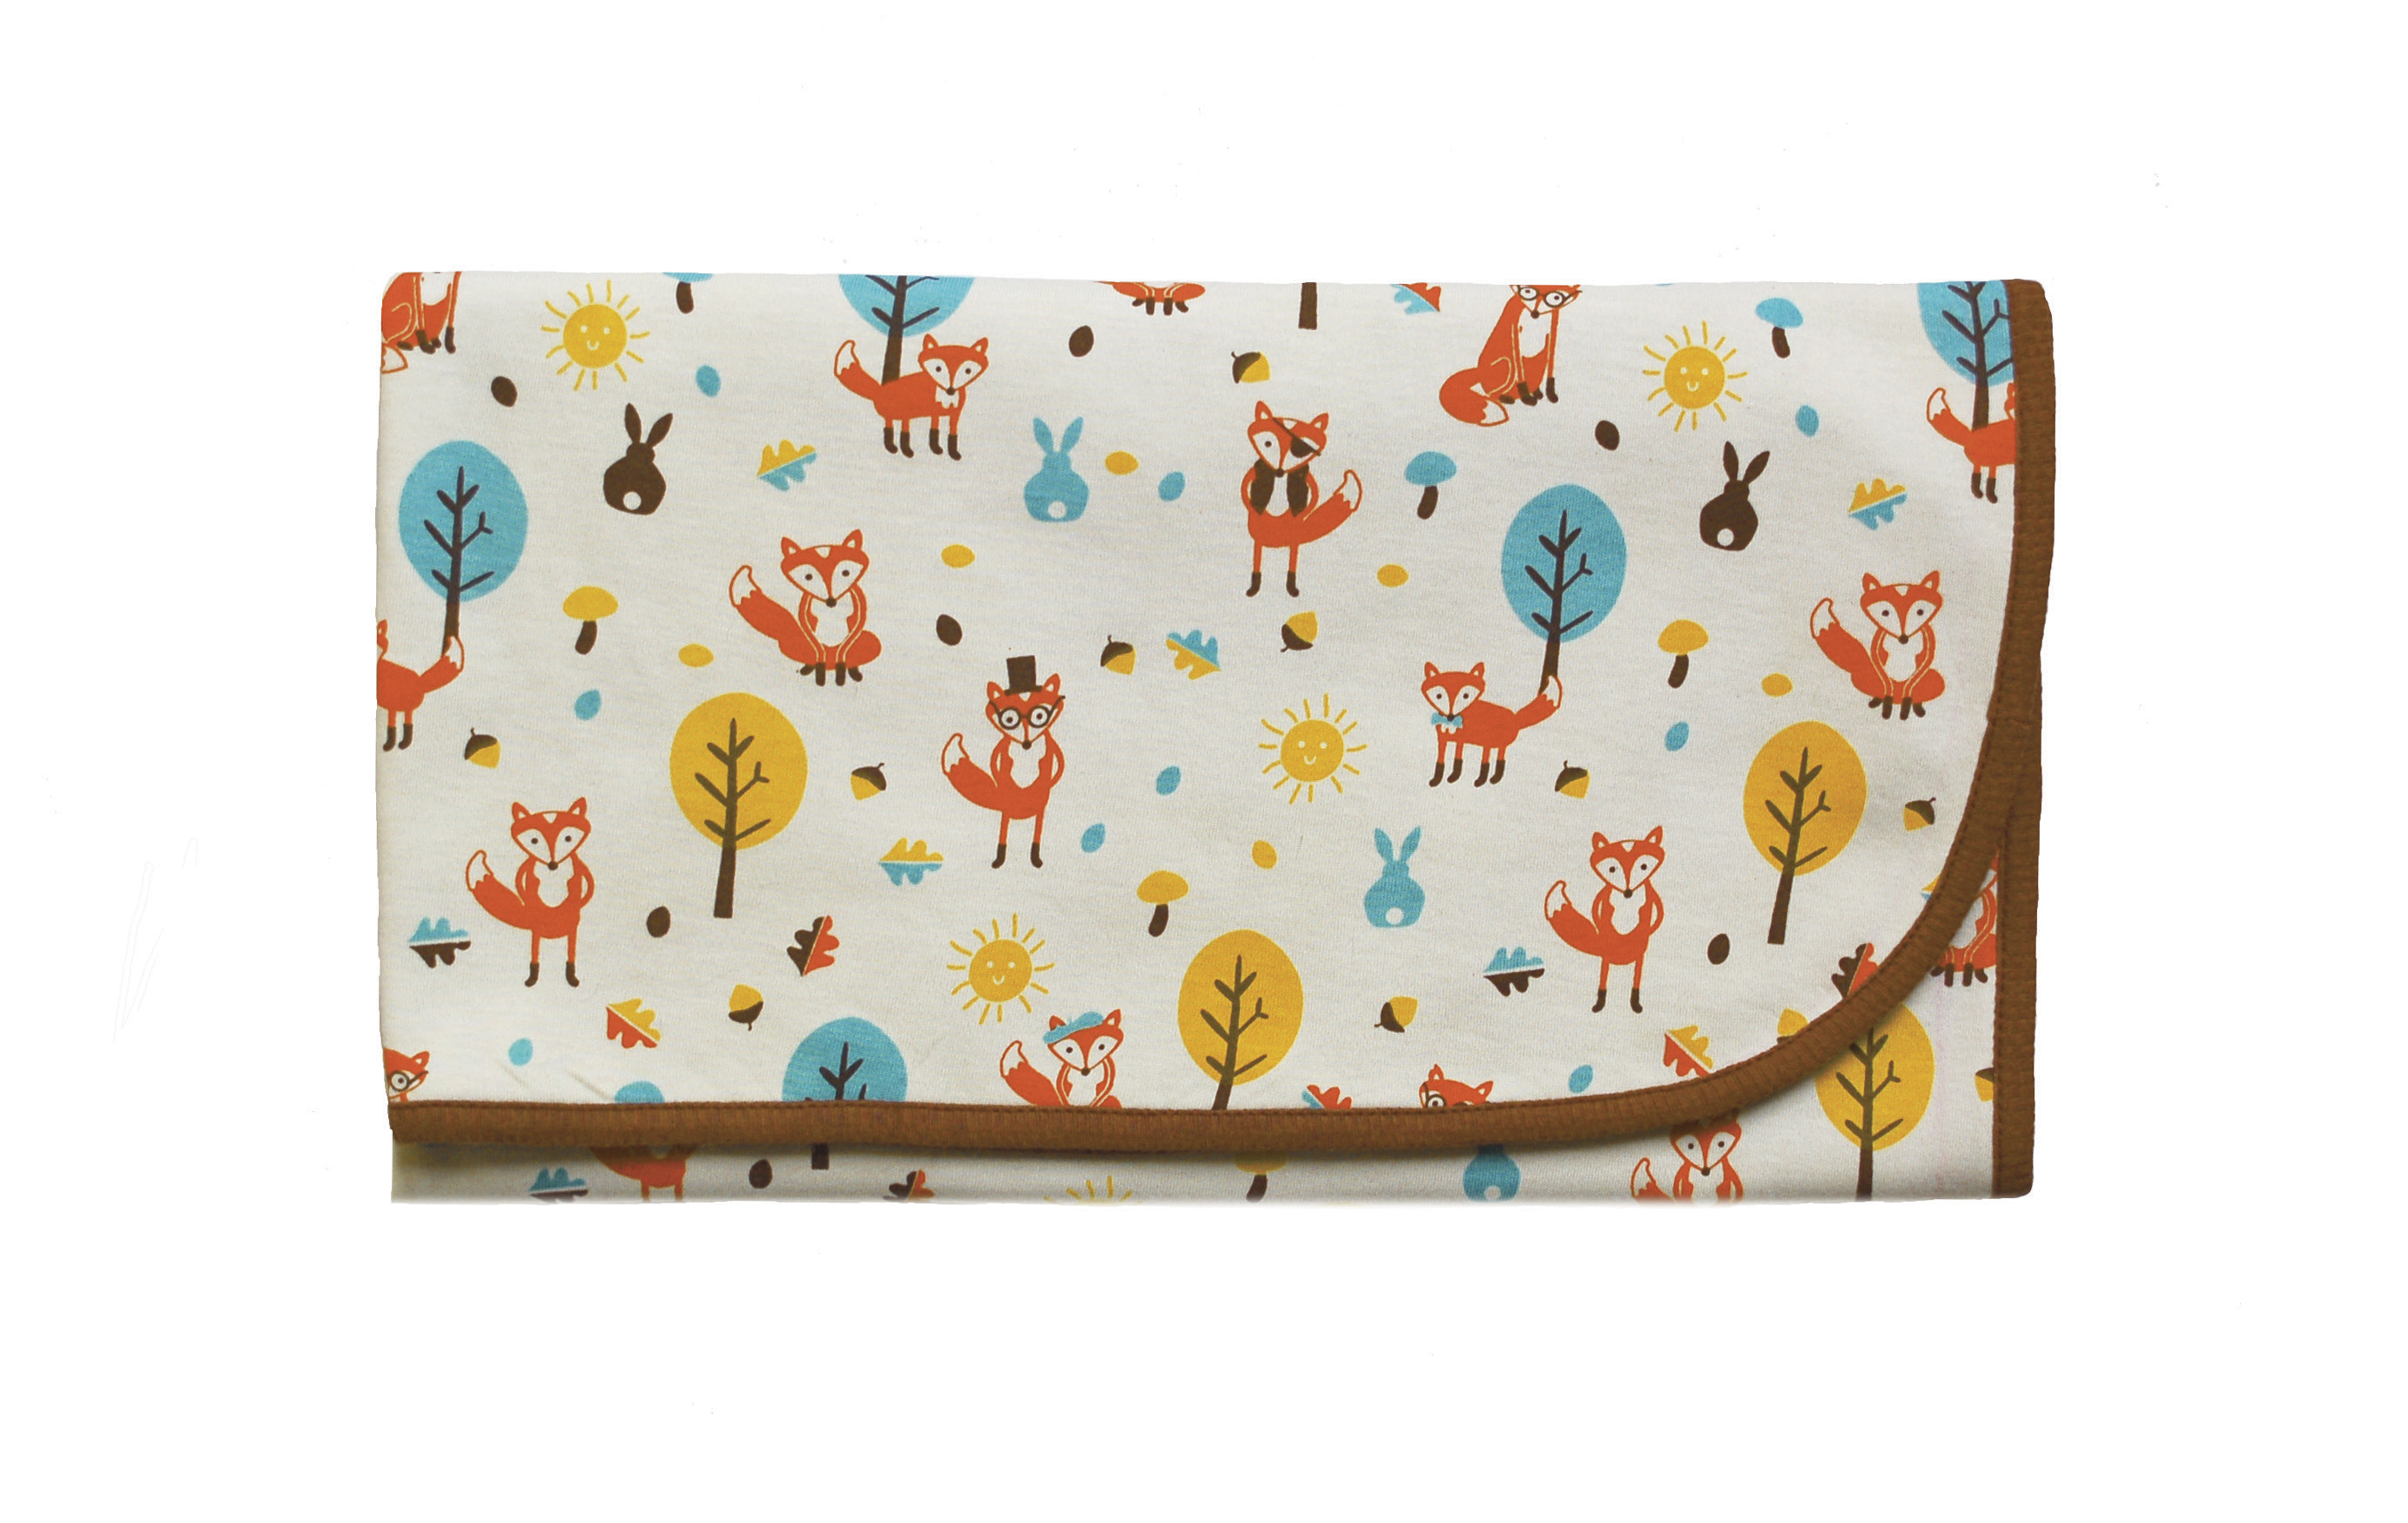 2766x1749 Foxy and friends blanket